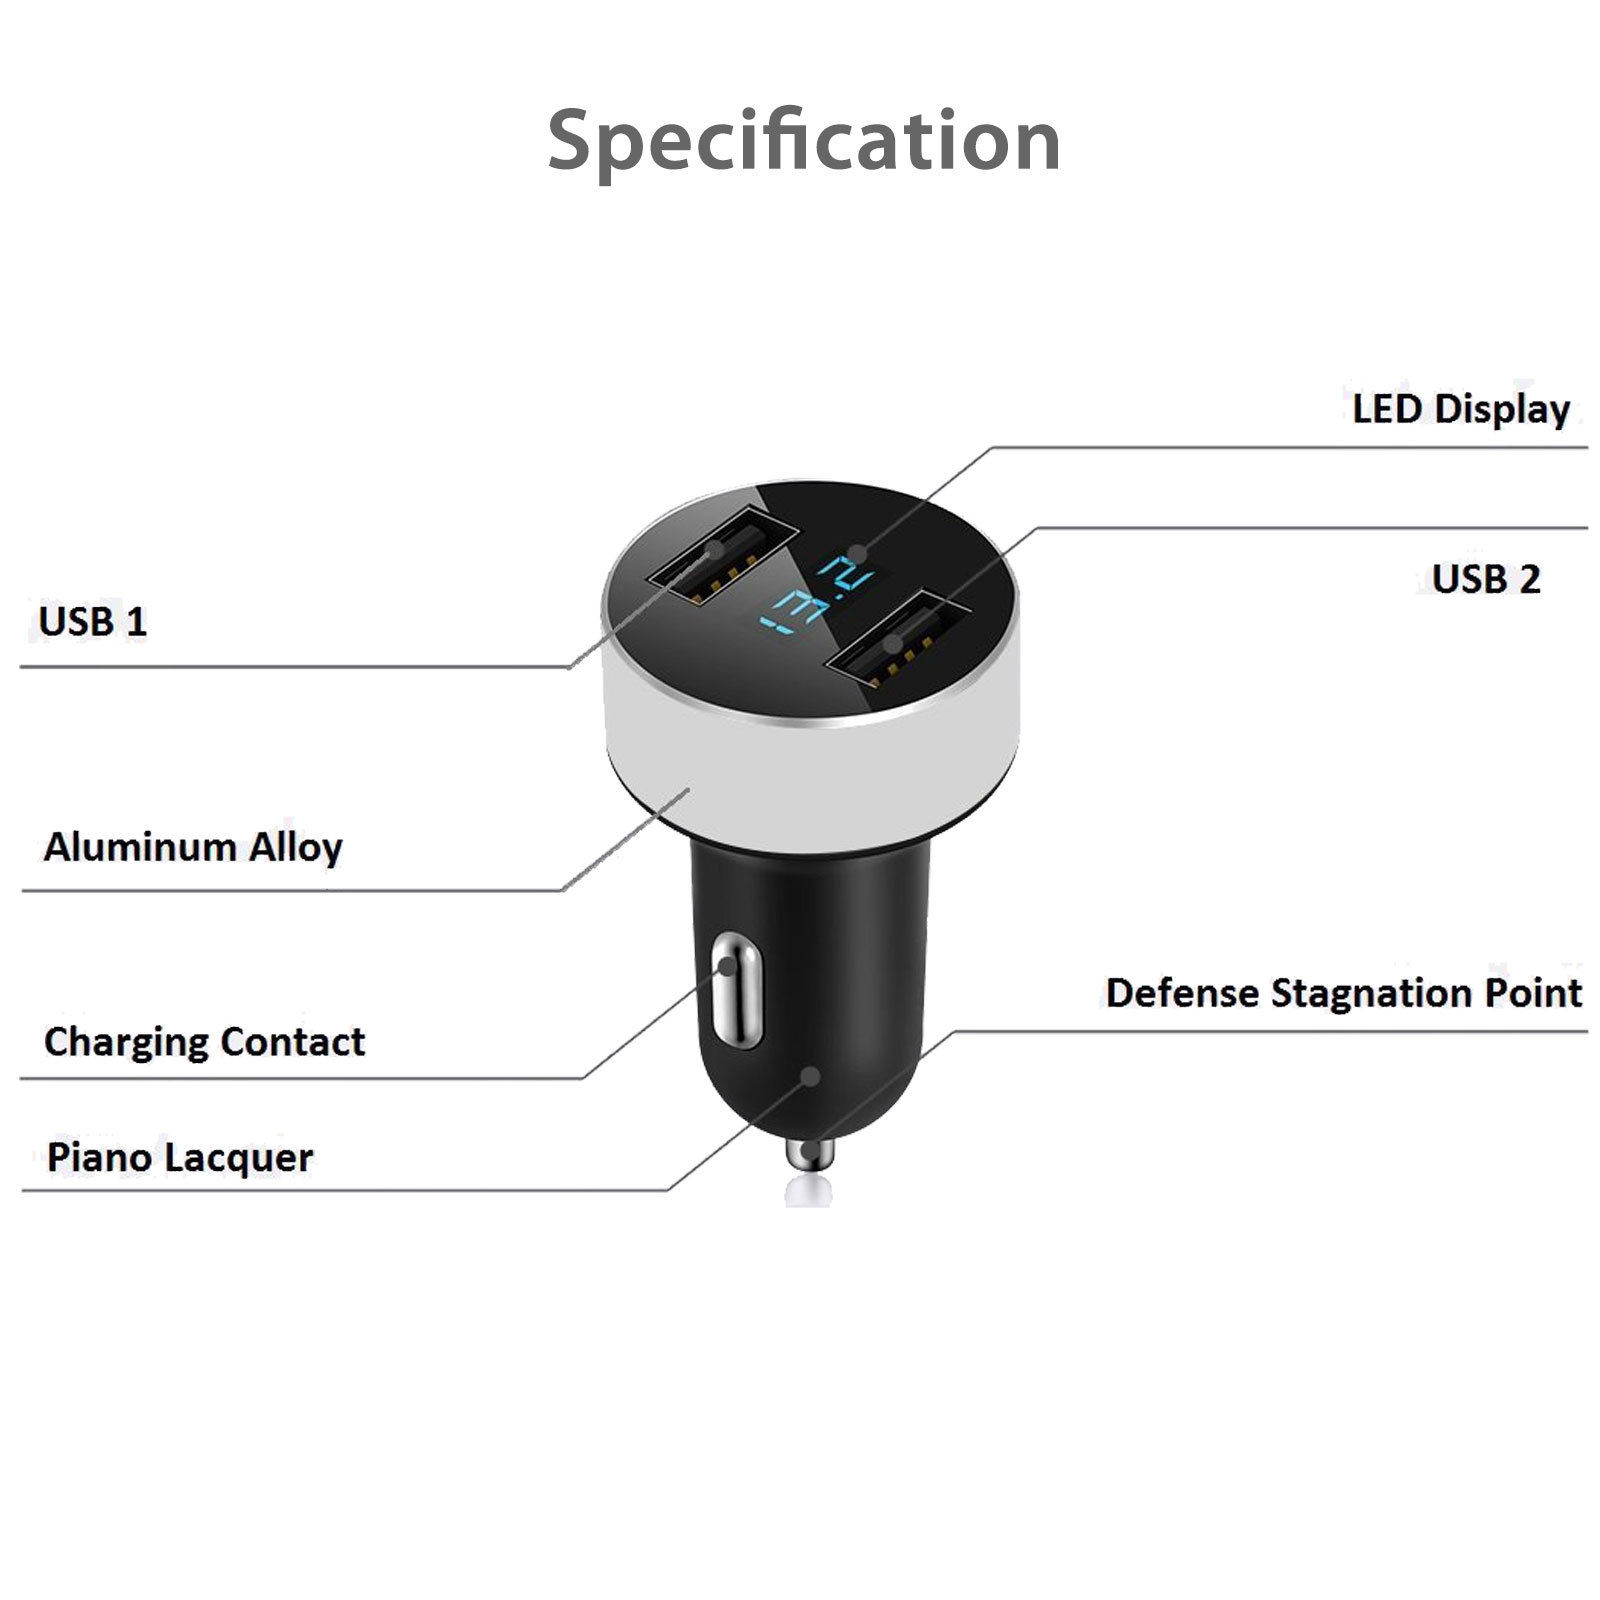 dual usb port car charger 3 1a fast charge led display cigarette rh ebay com car adapter wiring diagram car battery charger wiring diagram